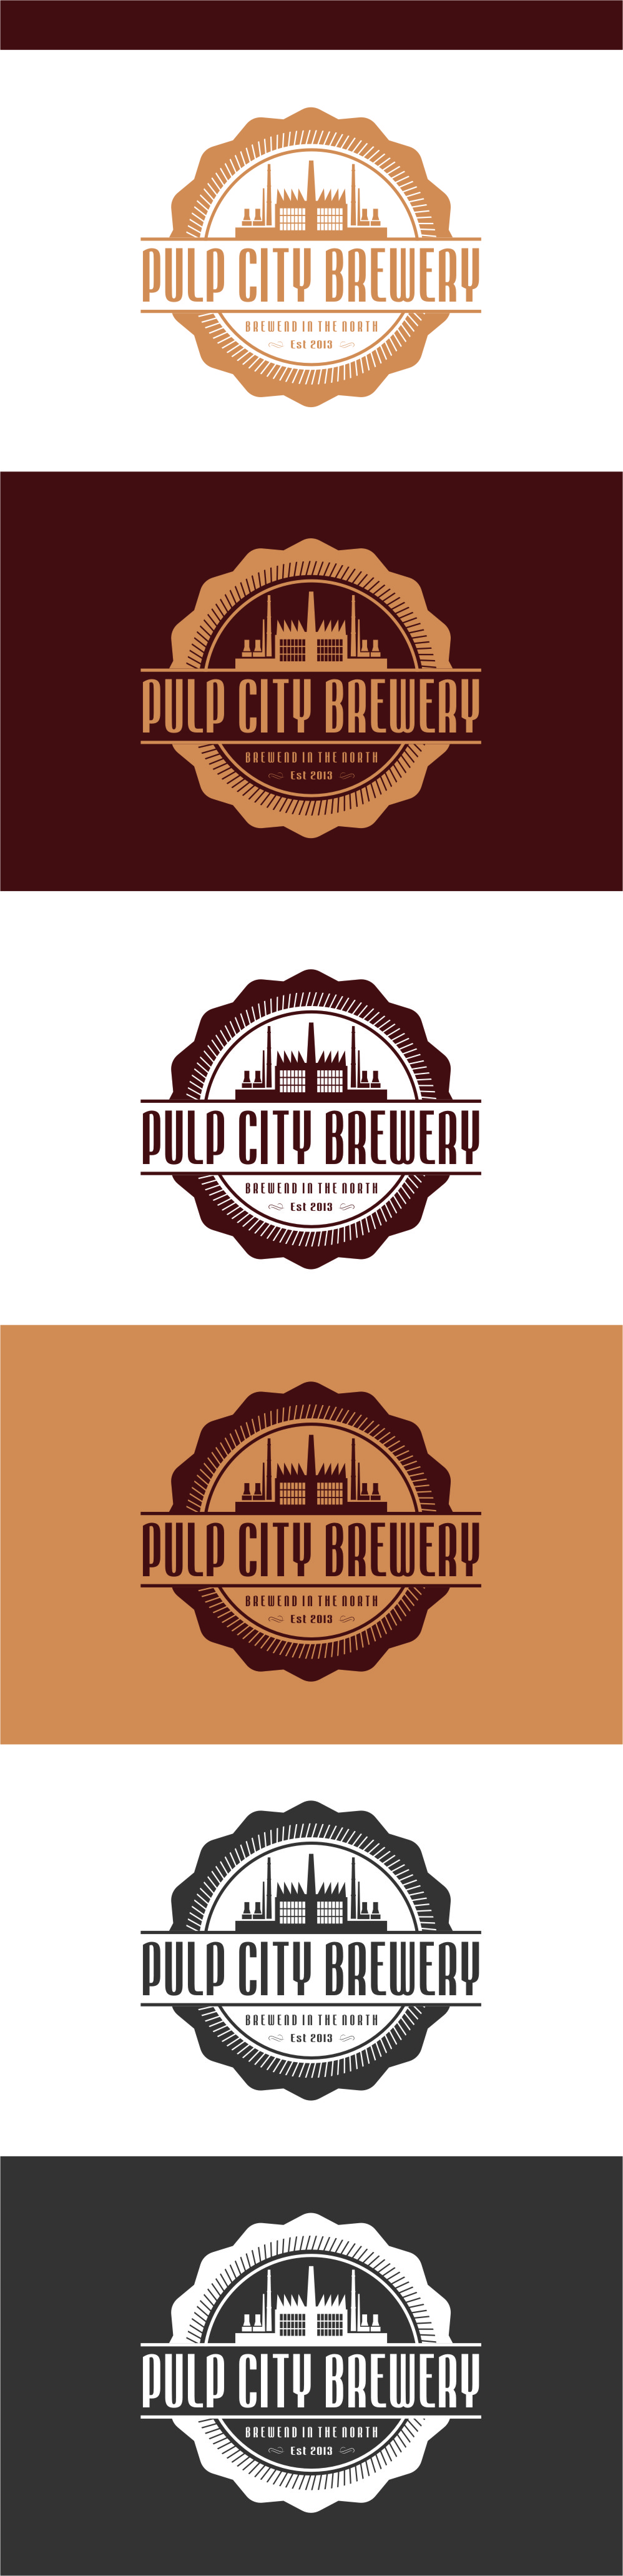 Logo Design by RasYa Muhammad Athaya - Entry No. 92 in the Logo Design Contest Artistic Logo Design for Pulp City Brewery.